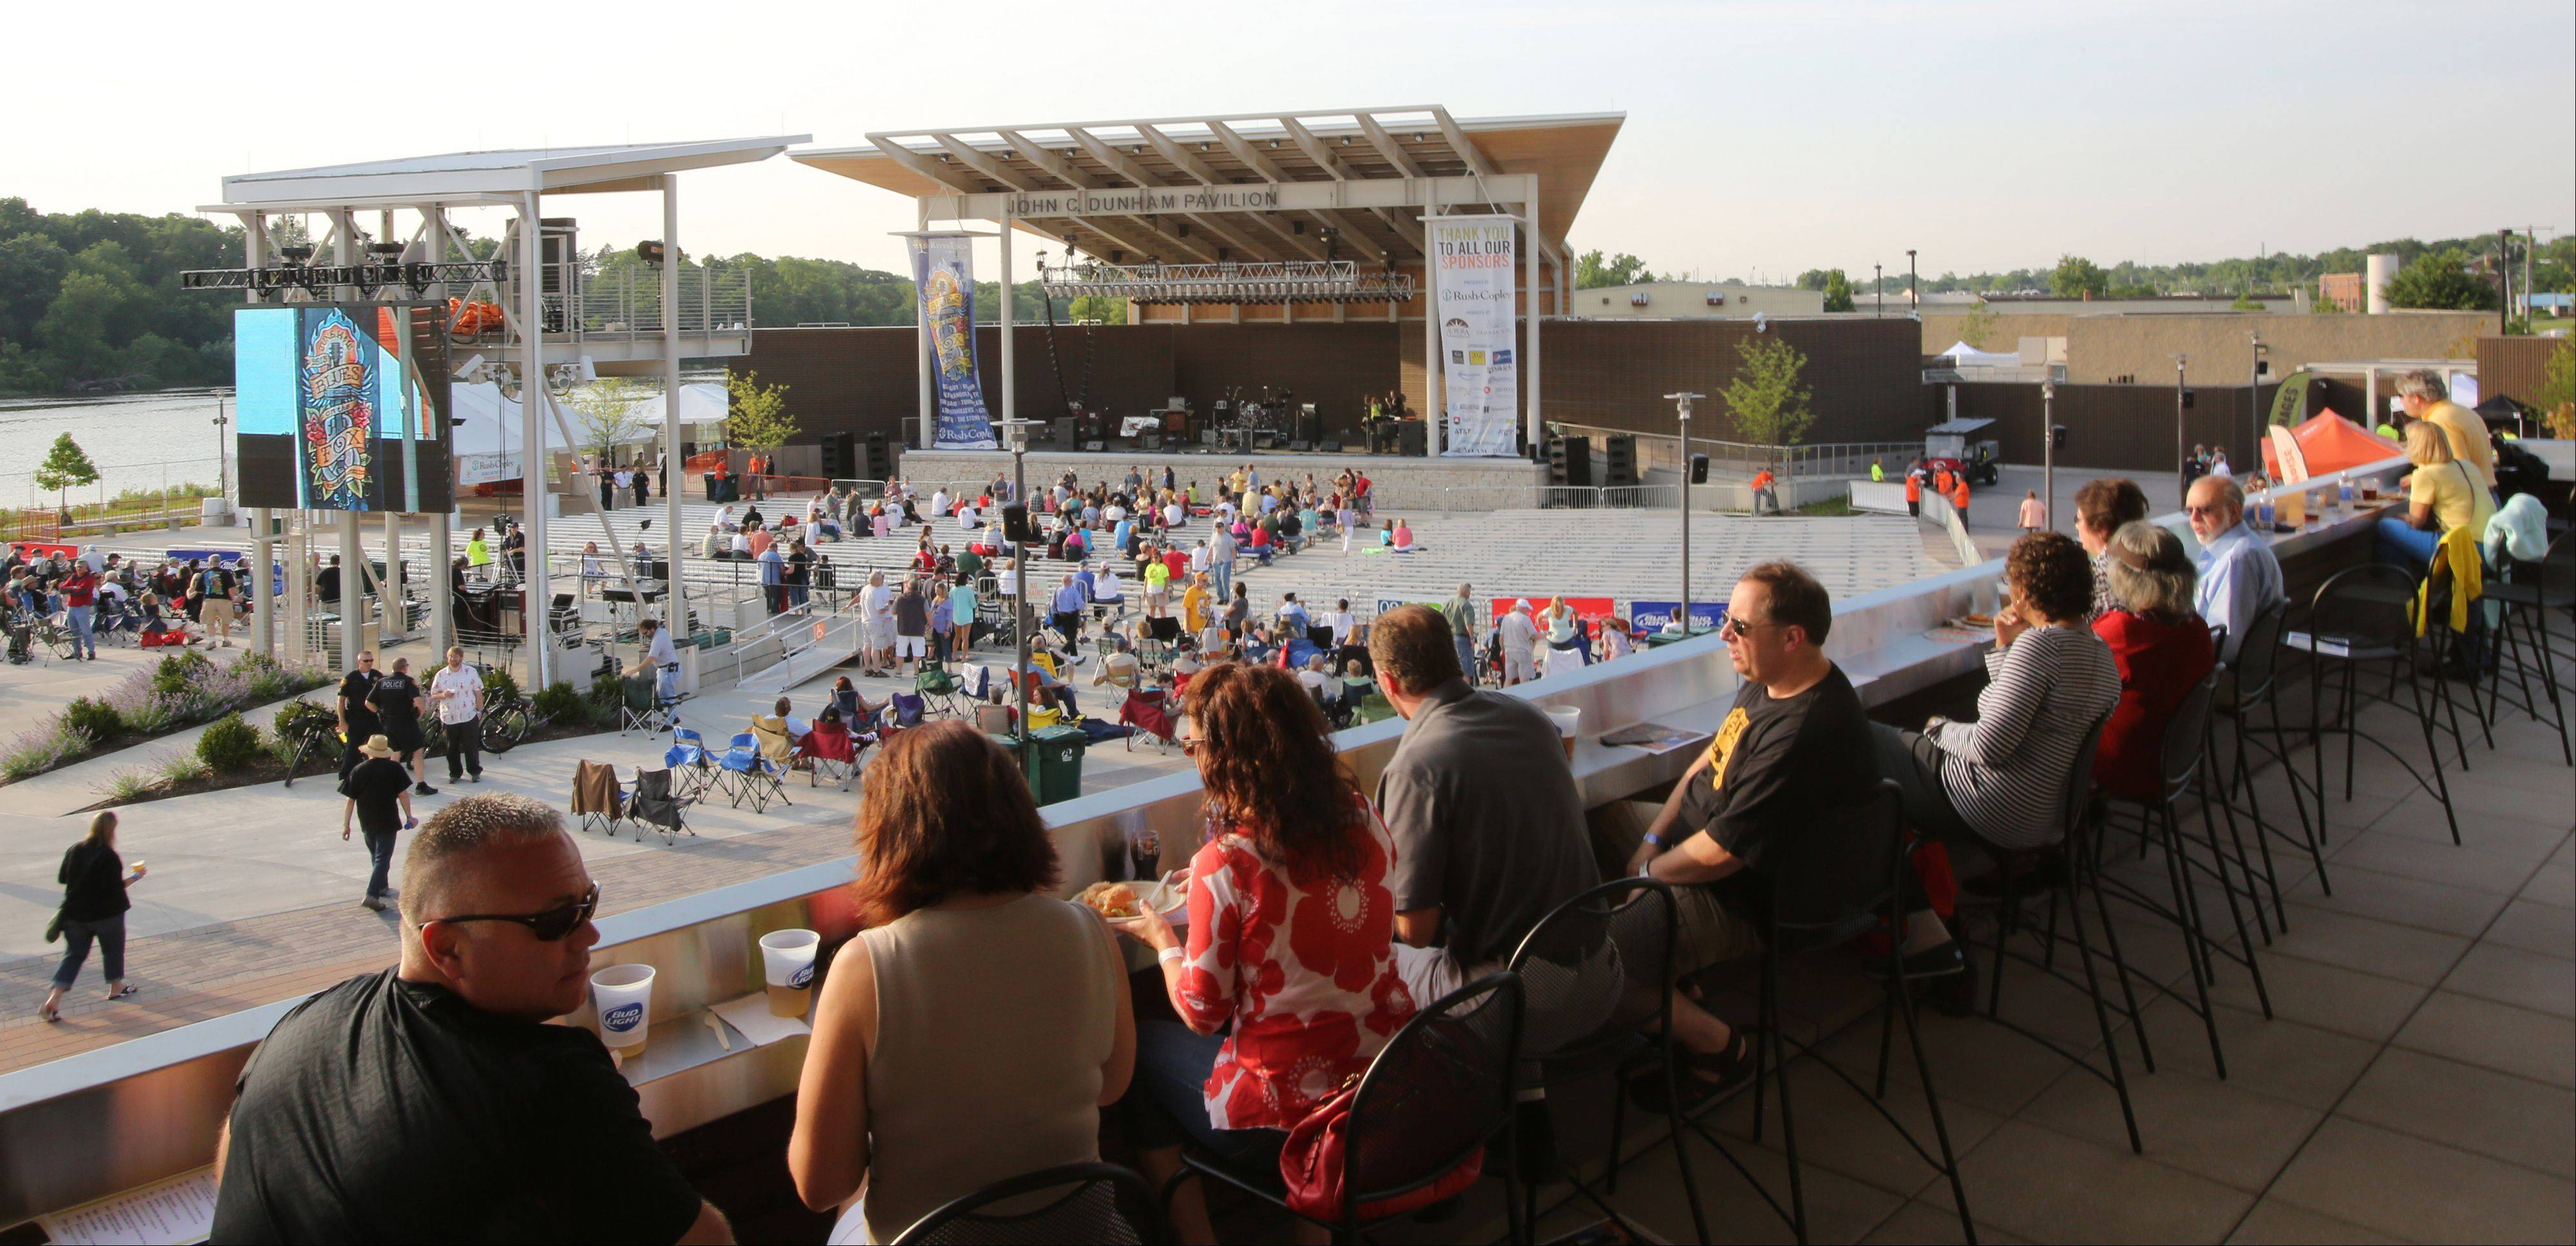 Fans watch the crowd filter into RiverEdge Park on Friday from the VIP rooftop deck. The $13.2 million Music Garden at the park opened to host the 17th Blues on the Fox festival.